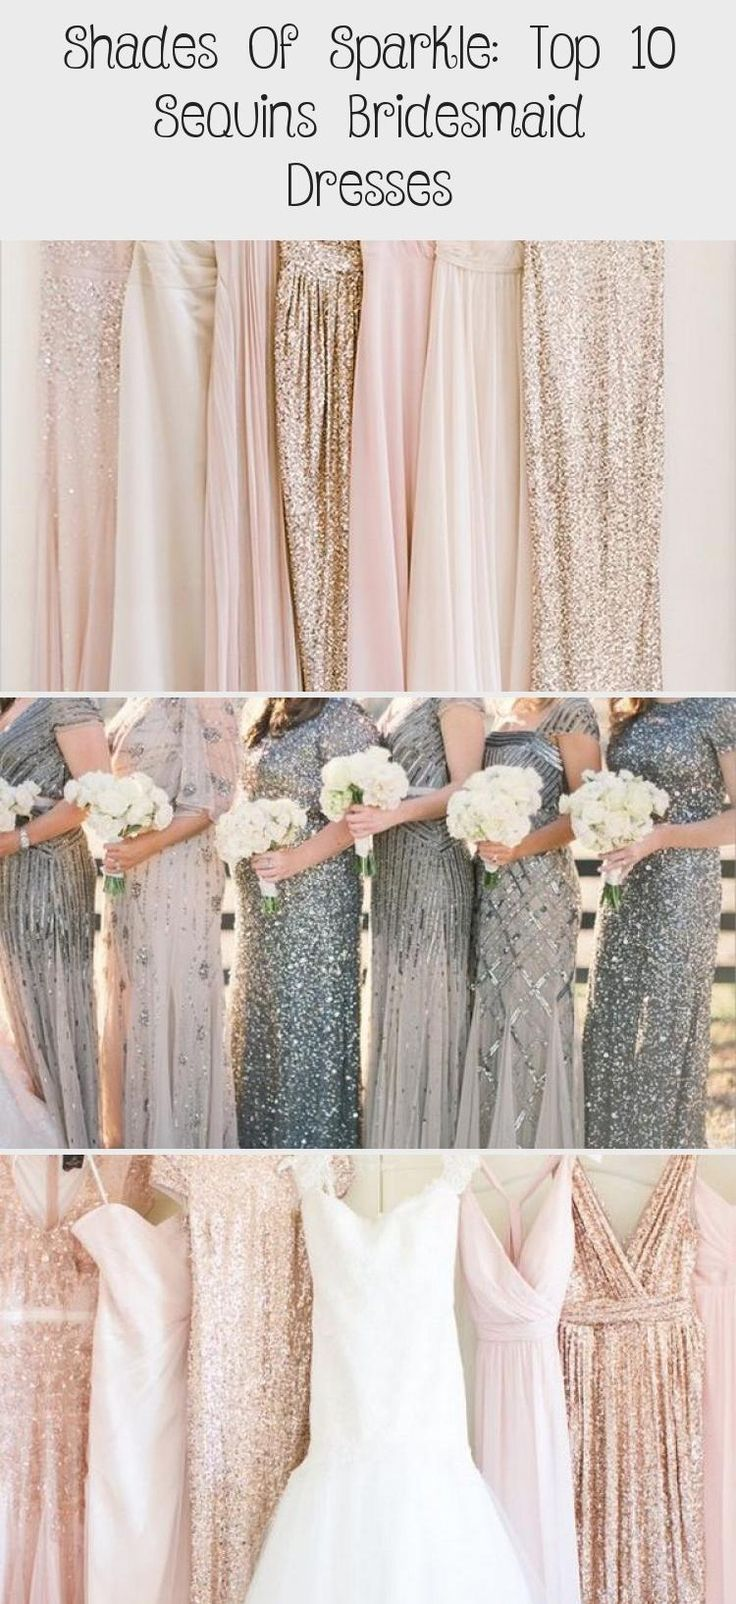 mix and match neutral glitter bridesmaid dresses #emmalovesweddings #weddingideas2019 #BridesmaidDresses2019 #GoldBridesmaidDresses #BridesmaidDressesColors #PinkBridesmaidDresses #RedBridesmaidDresses